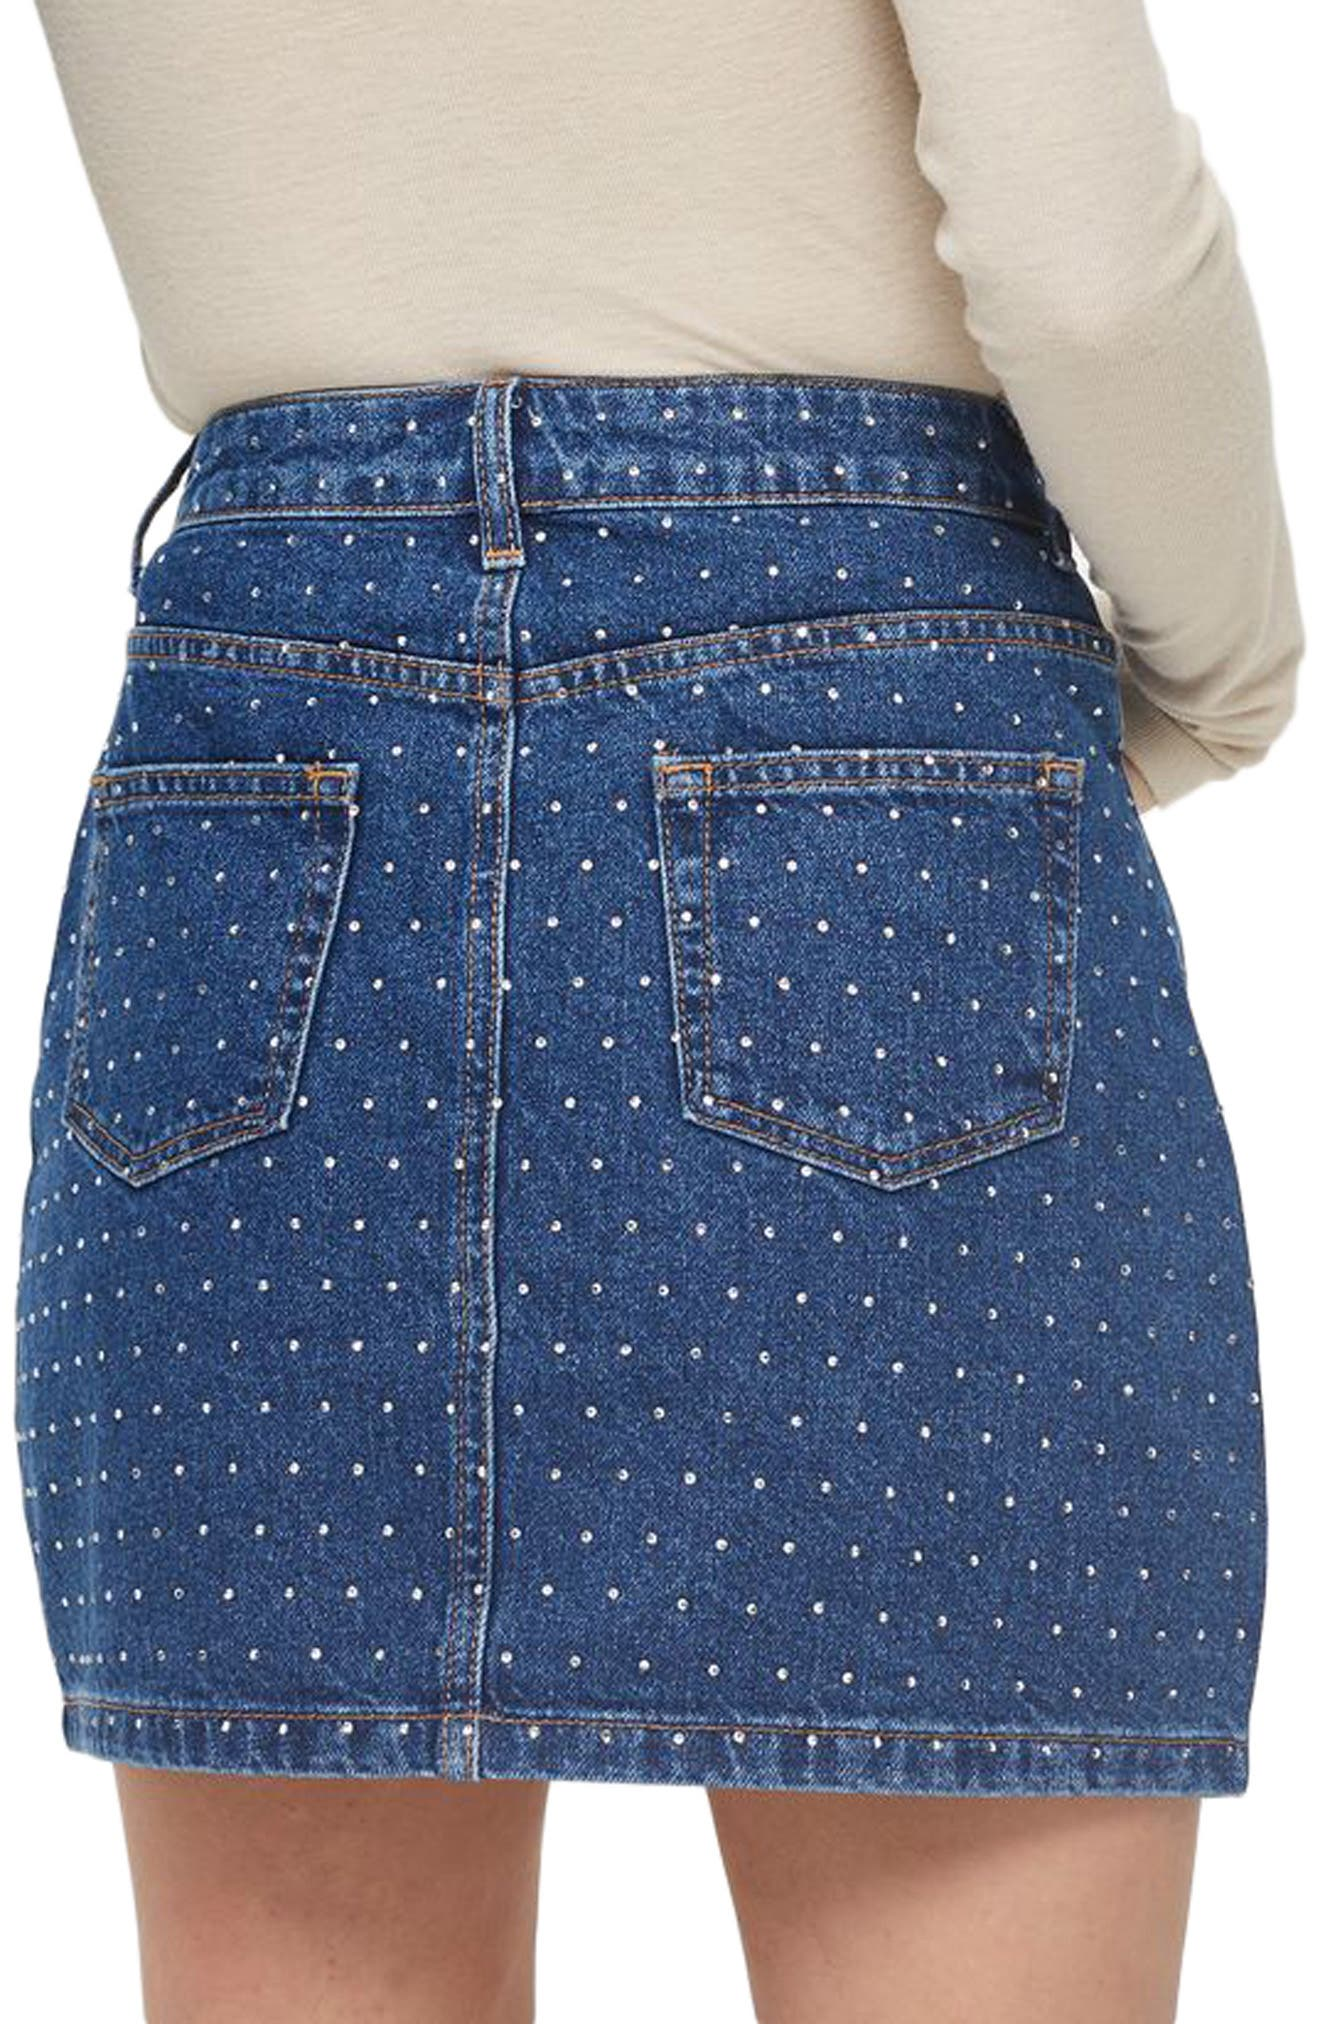 Crystal Studded Denim Miniskirt,                             Alternate thumbnail 3, color,                             Mid Denim